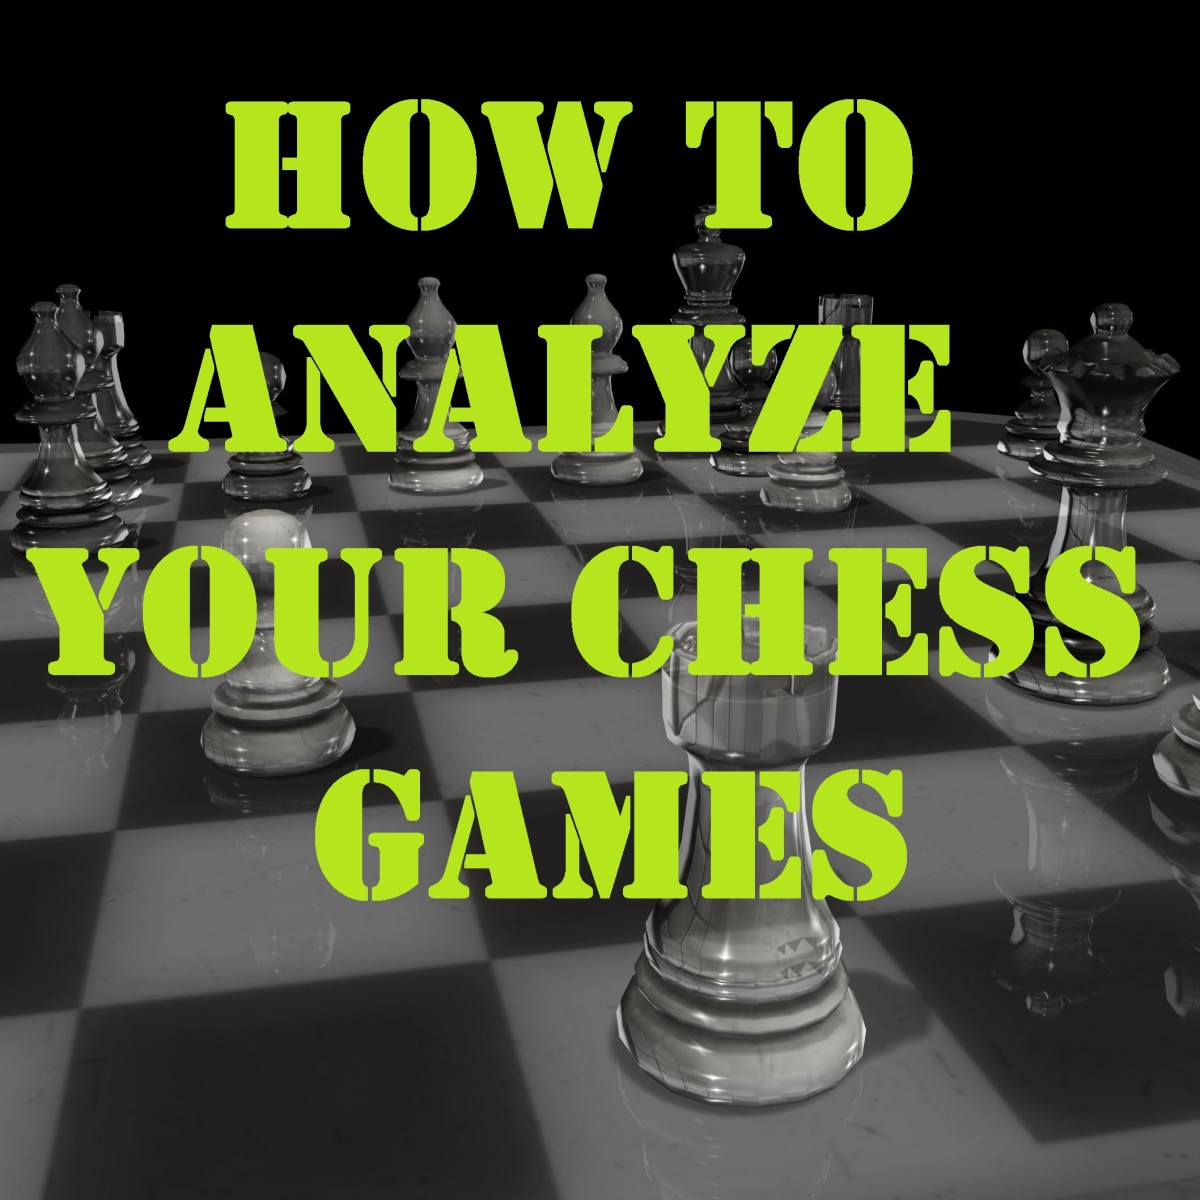 How to Analyze Your Chess Game Using Lucas Chess